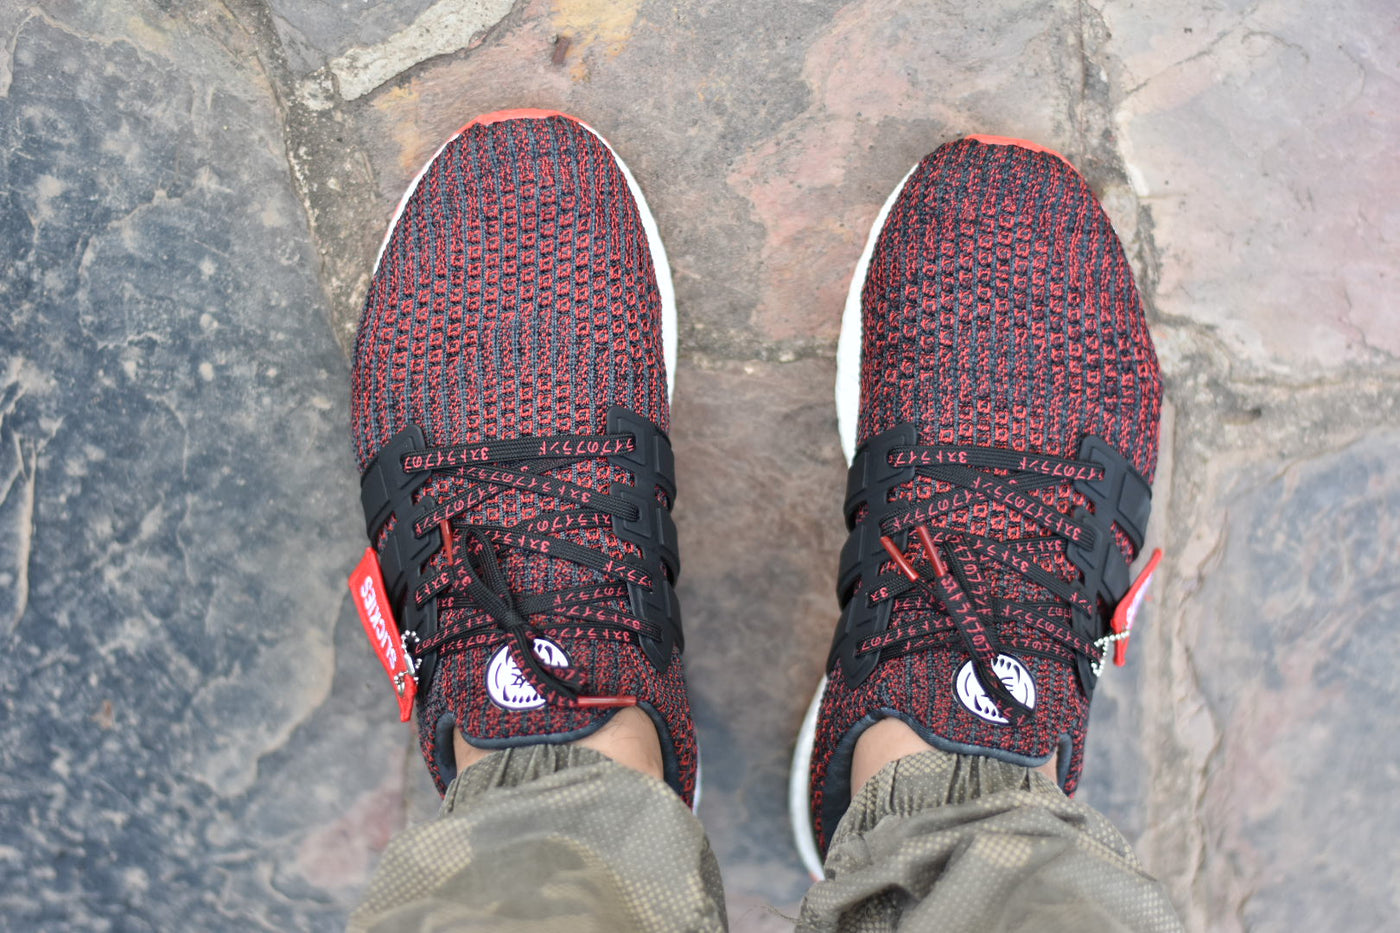 3e6749c0099 How To Lace Your Sneakers   Swap Your Shoe Laces   Year of the Dog Chinese